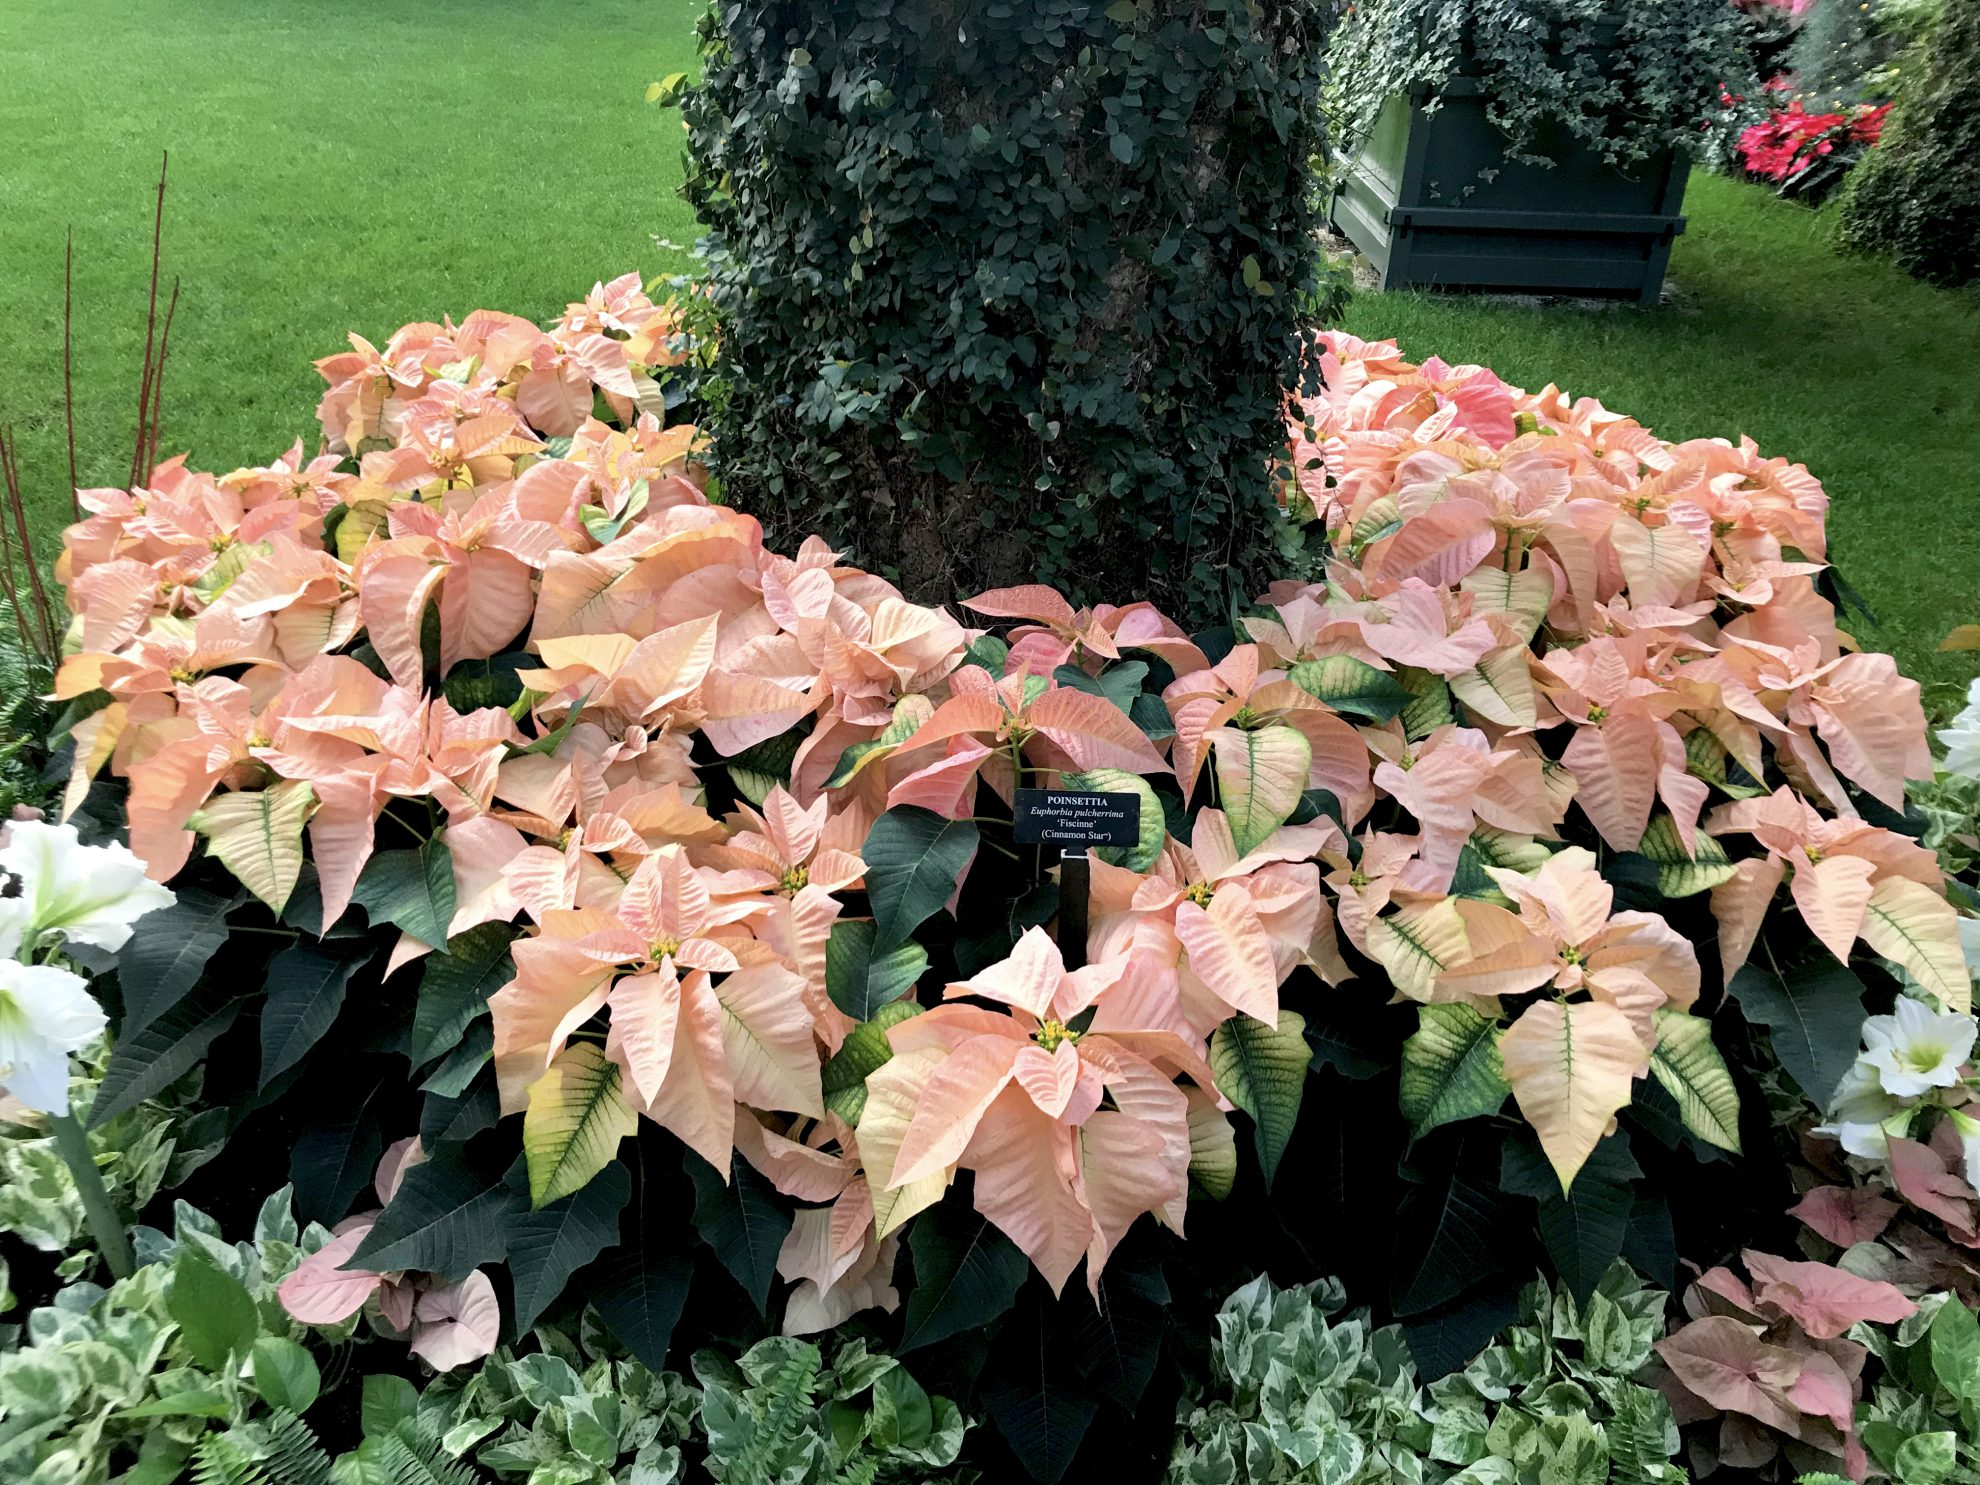 Dazzling pink poinsettas at the base of a vine-covered tree at Longwood Gardens Conservatory